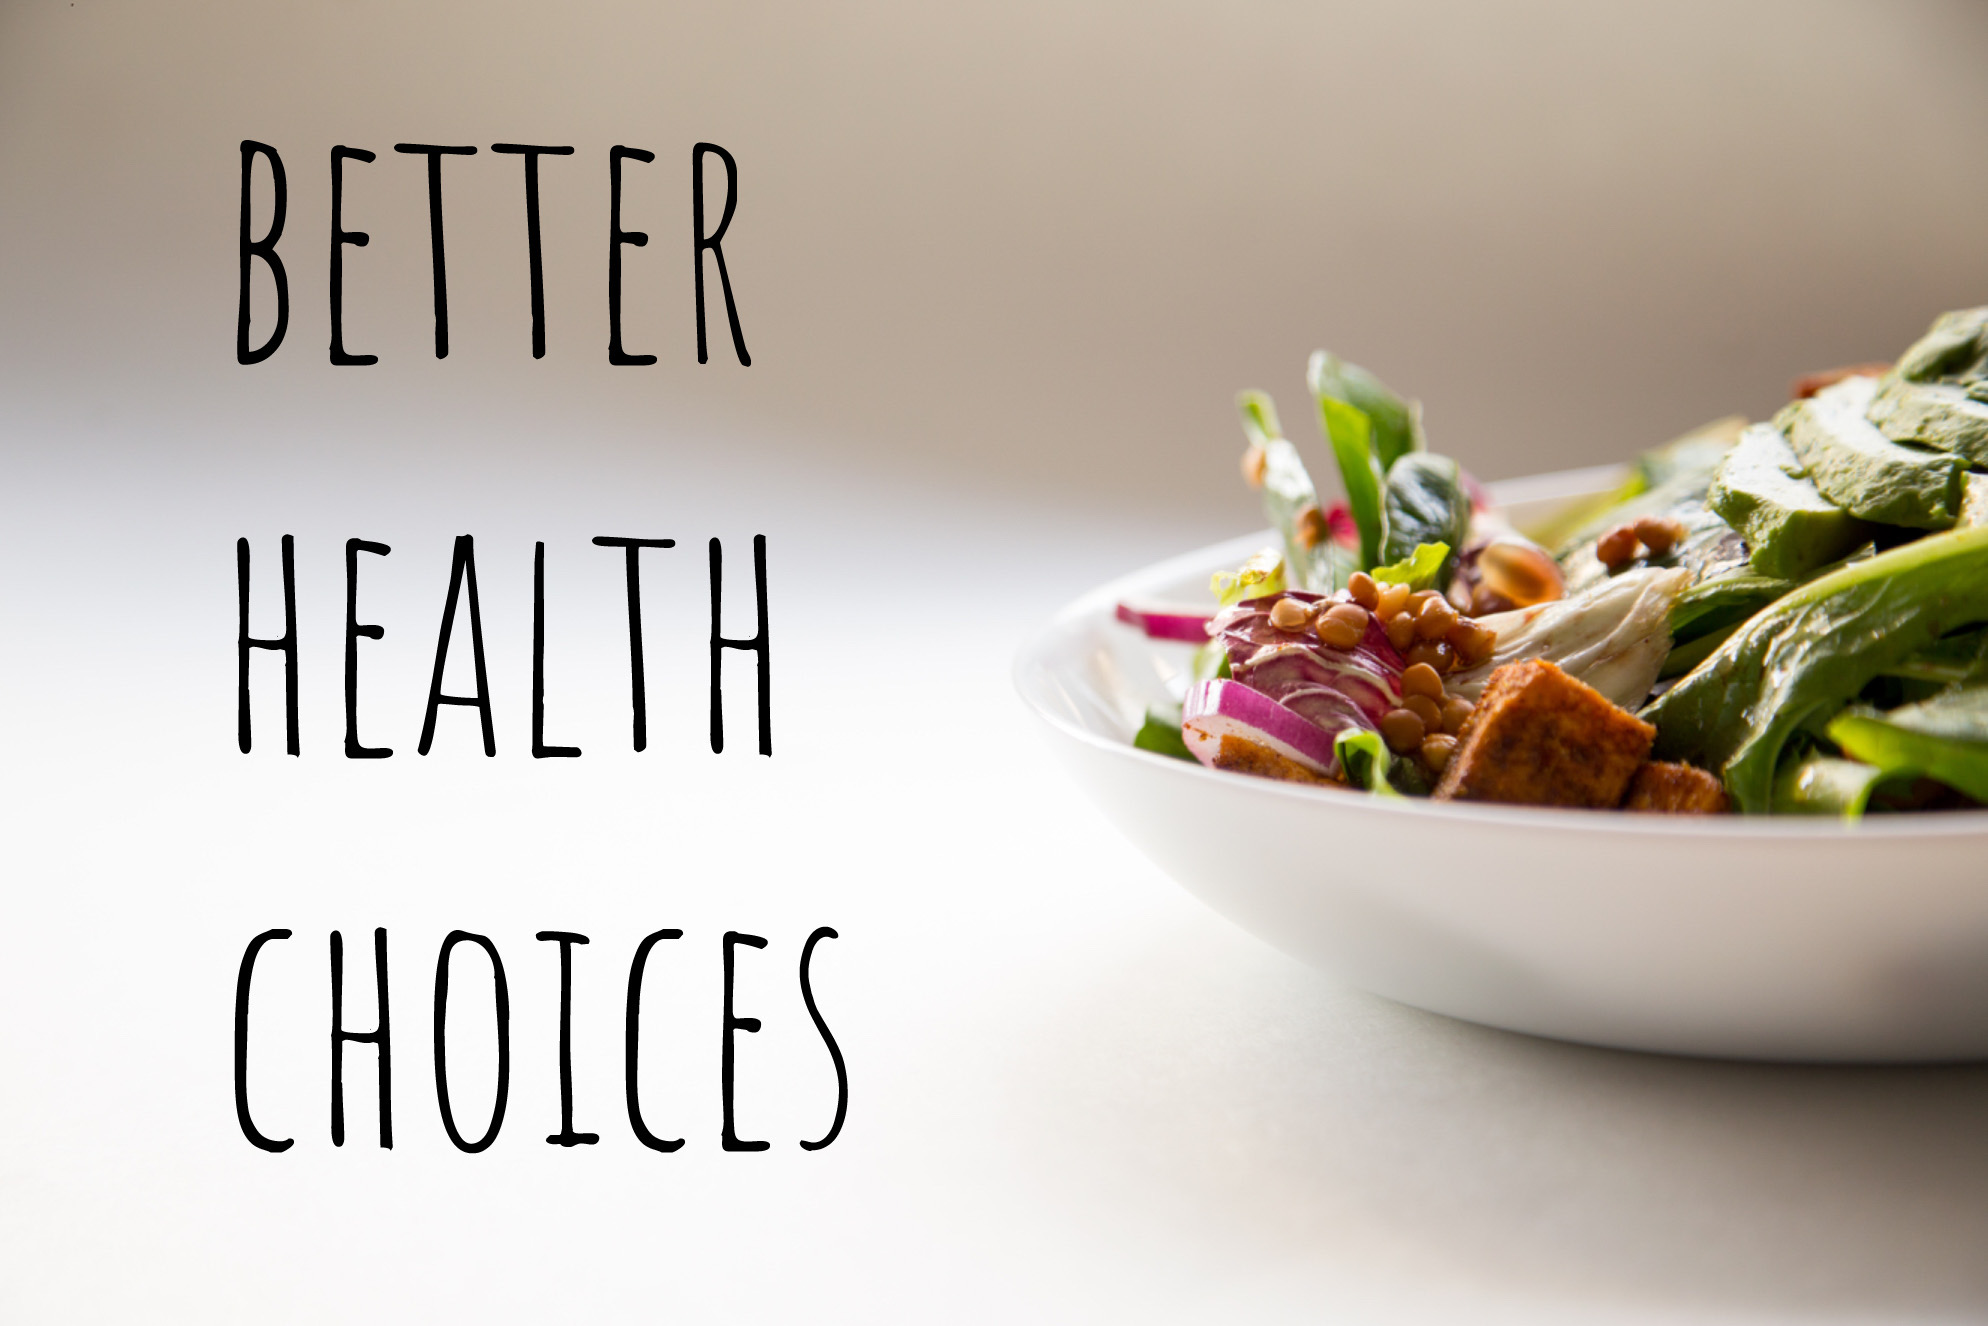 How to make better health choices